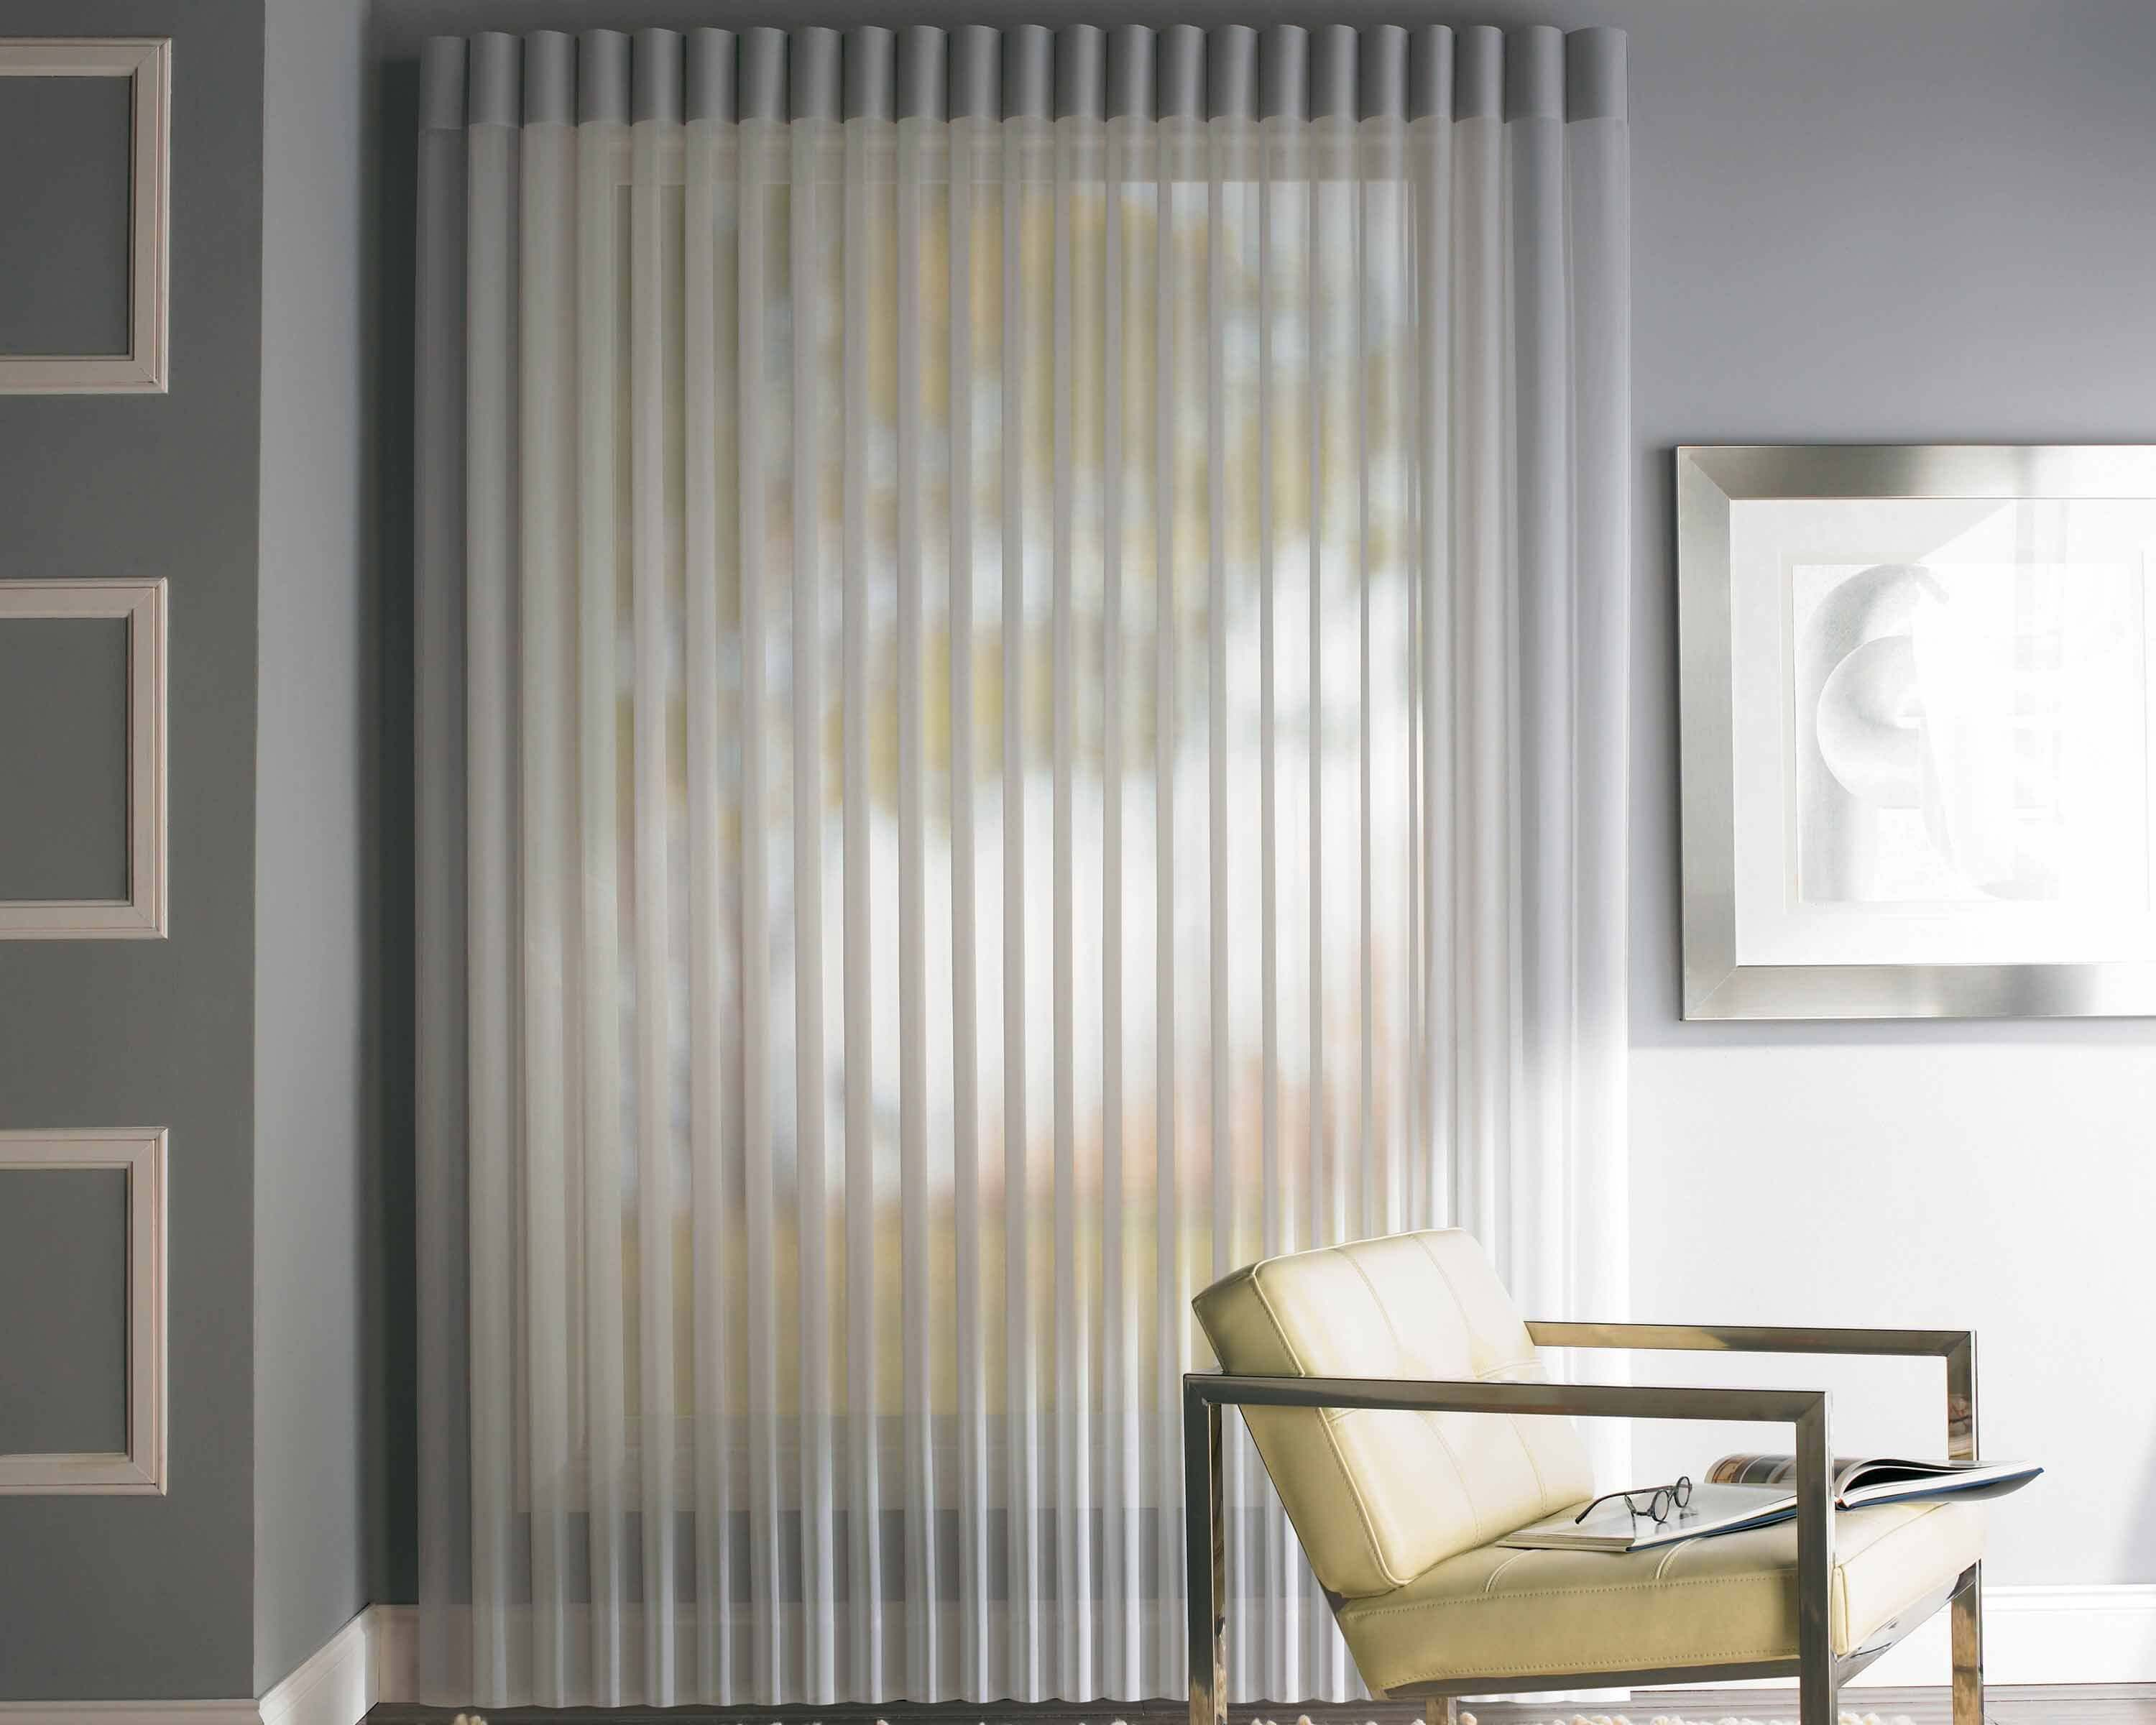 Choosing the Right Blinds for Your Home - Privacy Blinds